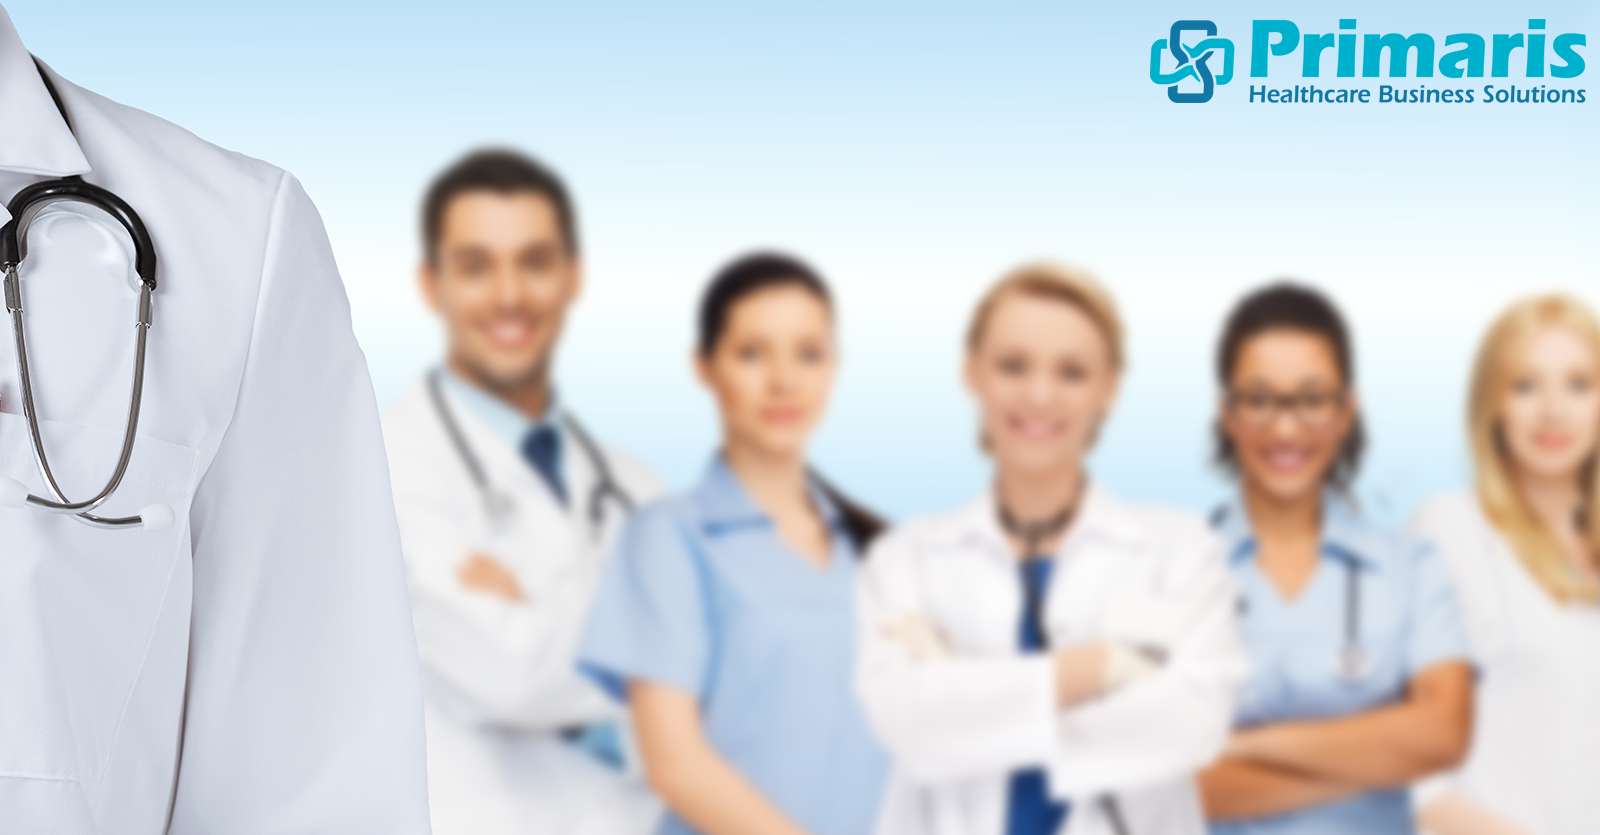 Lineup of healthcare providers illustrates a winning quality reporting team.